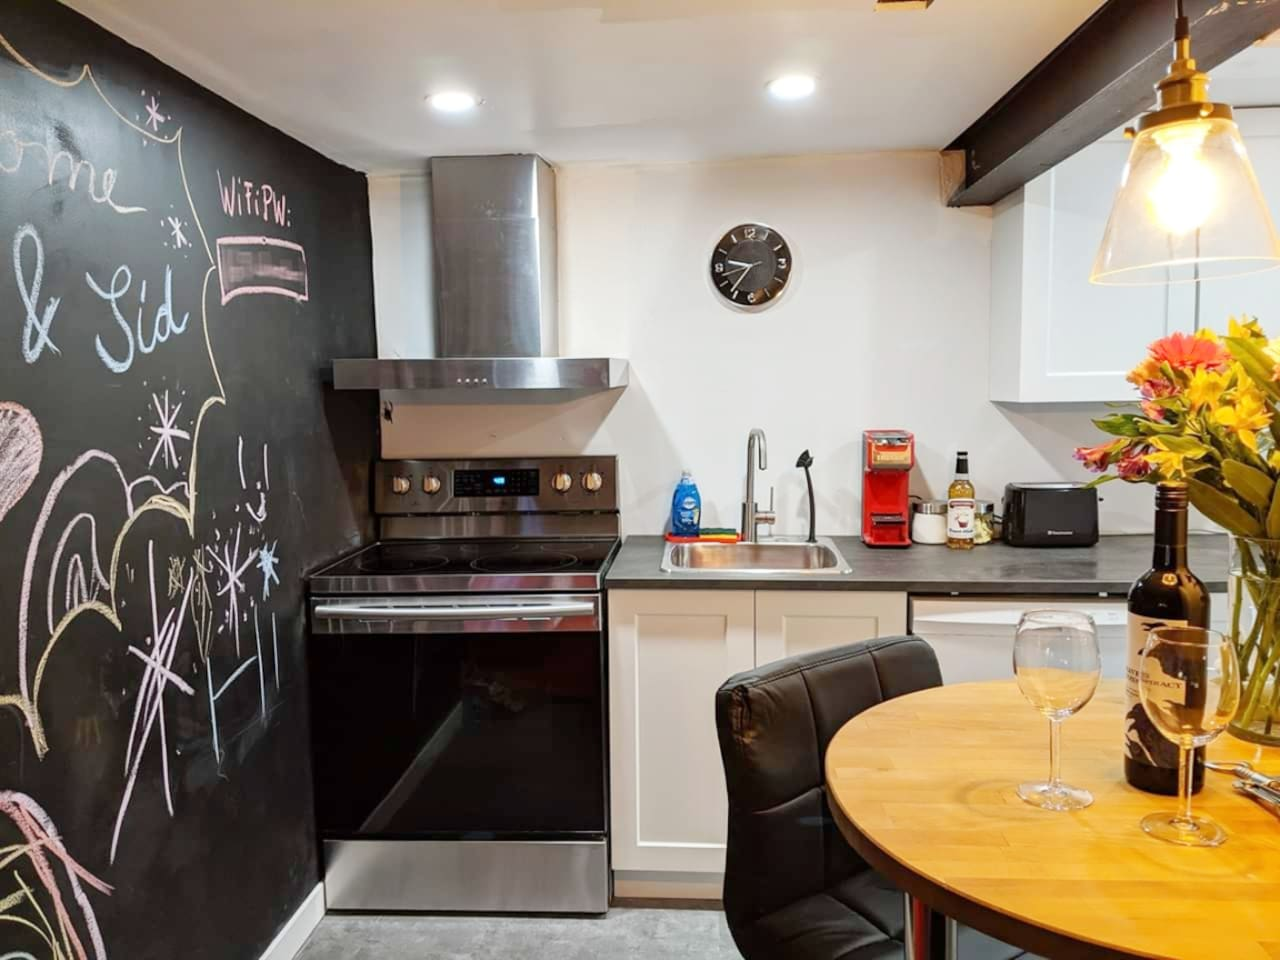 """""""it's a fully equipped apartment for stays of any duration, as it comes with a complete kitchen including washing machine/dryer and dish washer"""" - Guest"""